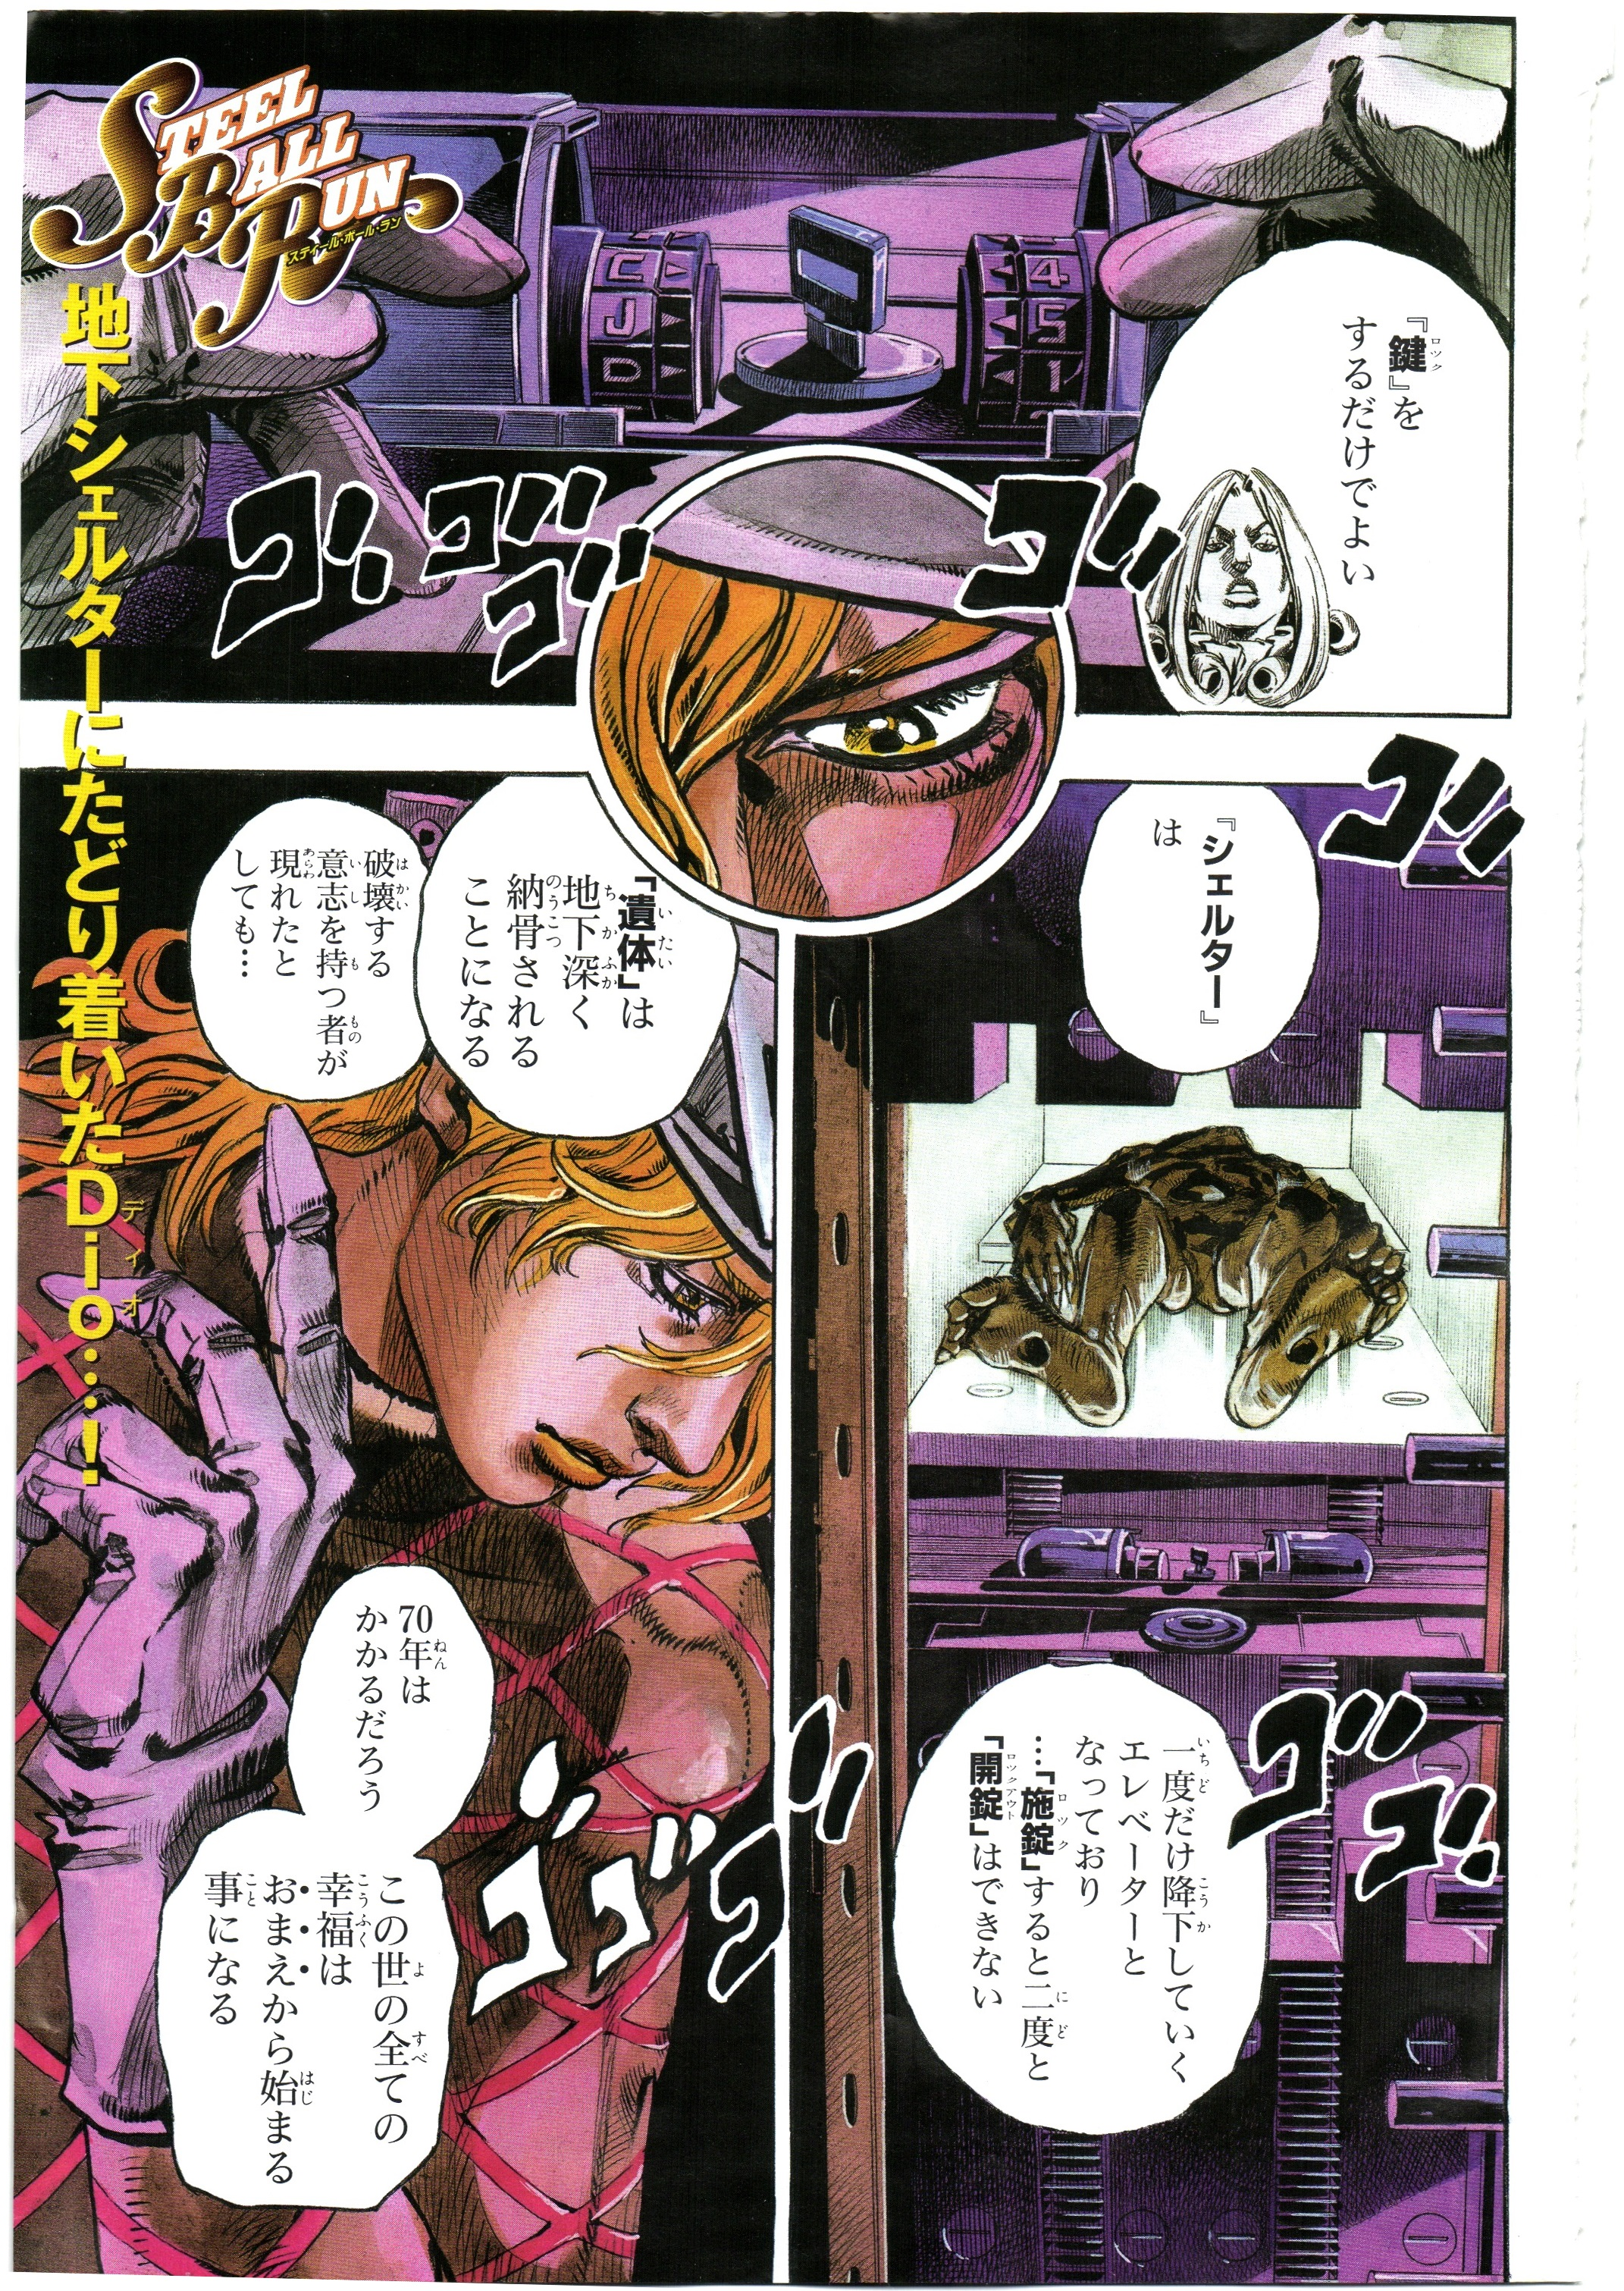 SBR Chapter 95 Magazine Cover A